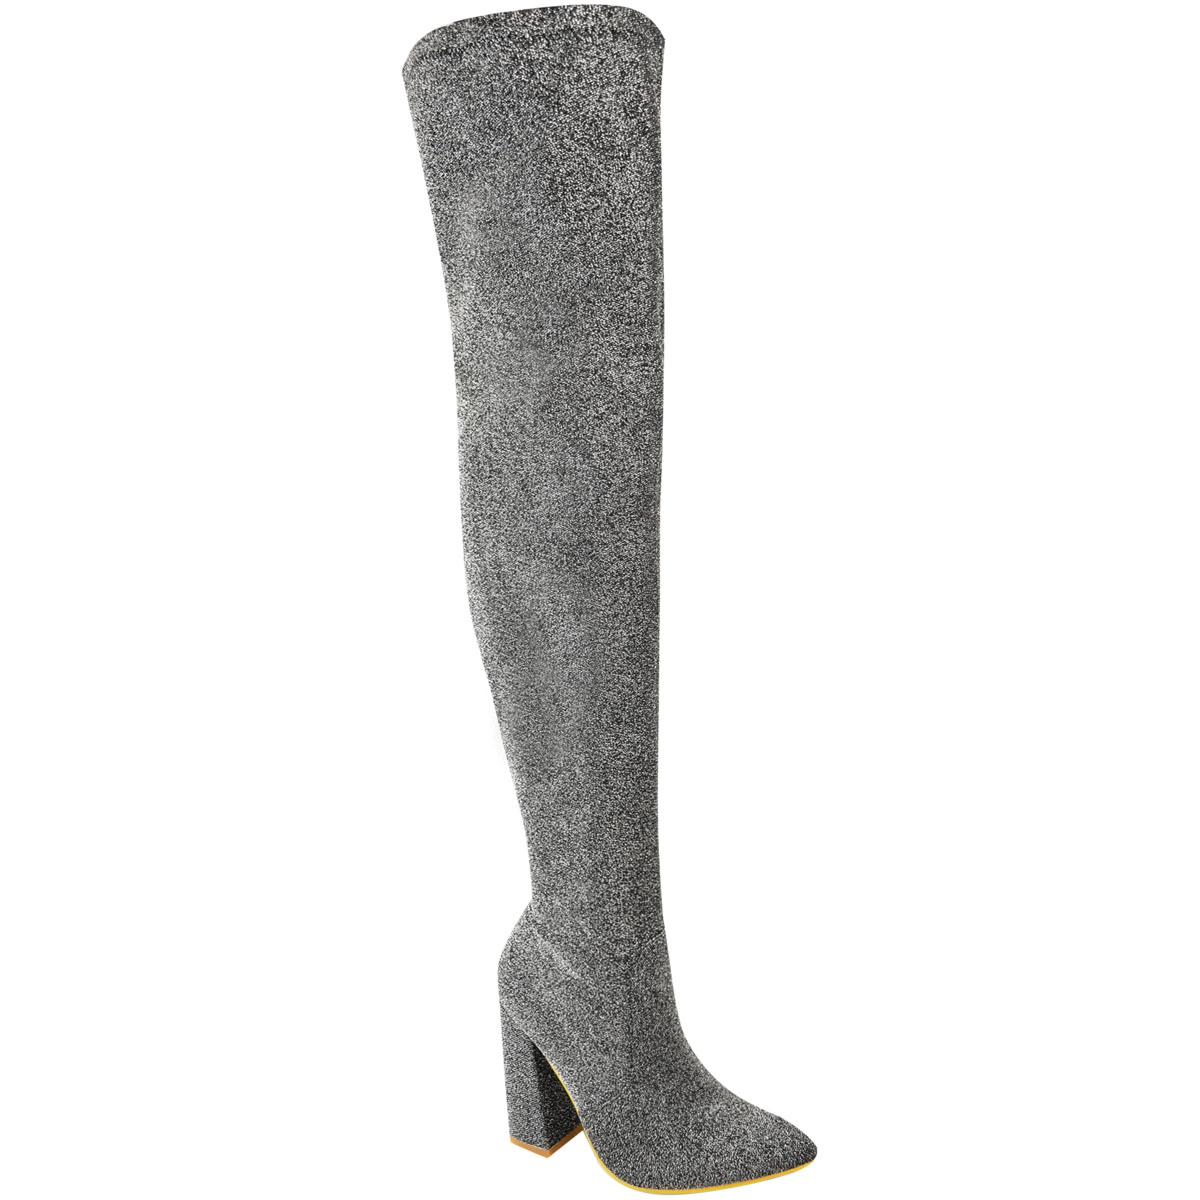 Womens-Ladies-Thigh-High-Boots-Lycra-Over-The-Knee-Pointy-Block-High-Heels-Size Indexbild 18